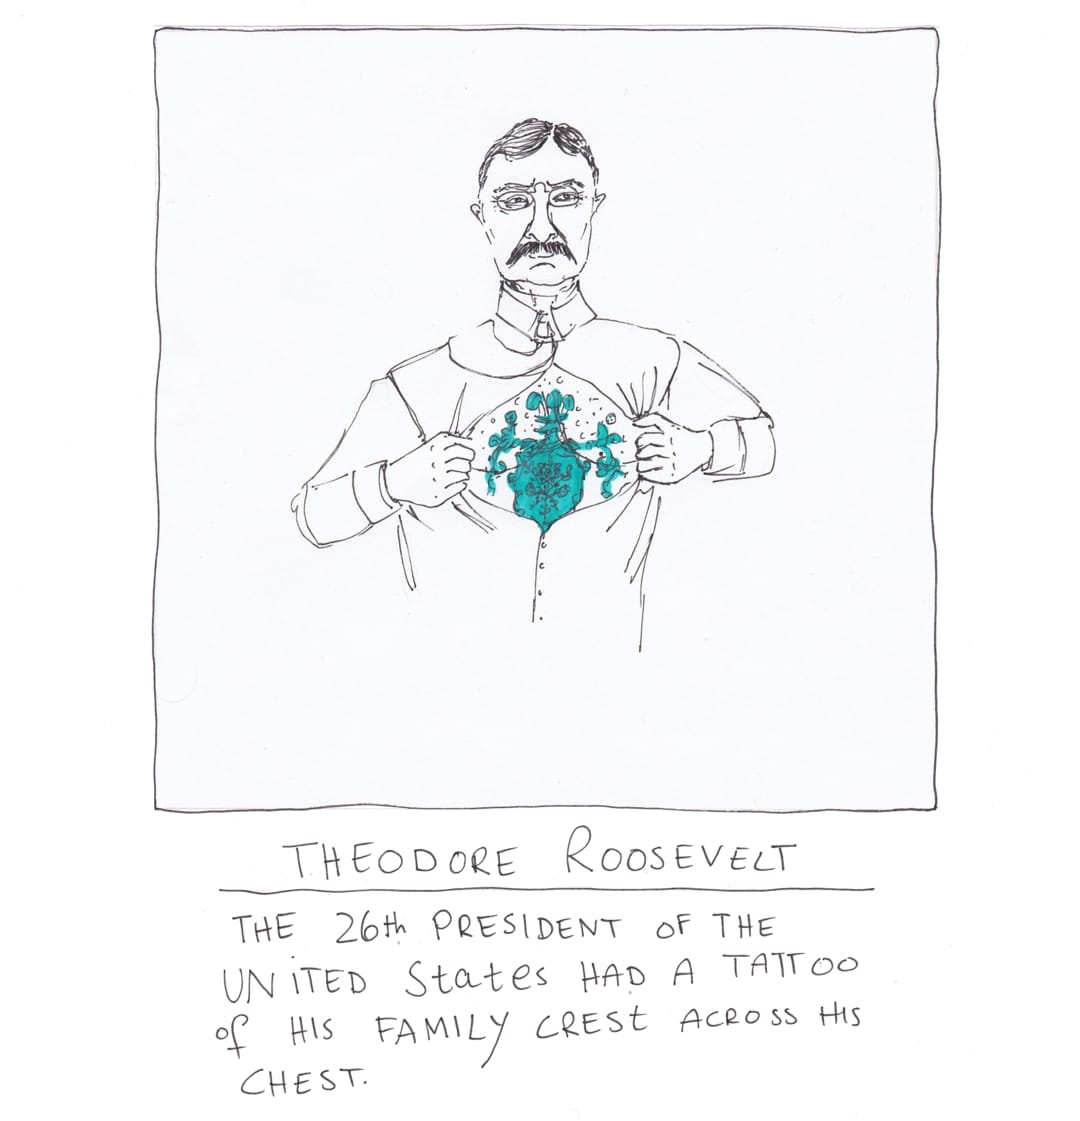 roosevelt tattoo drawing